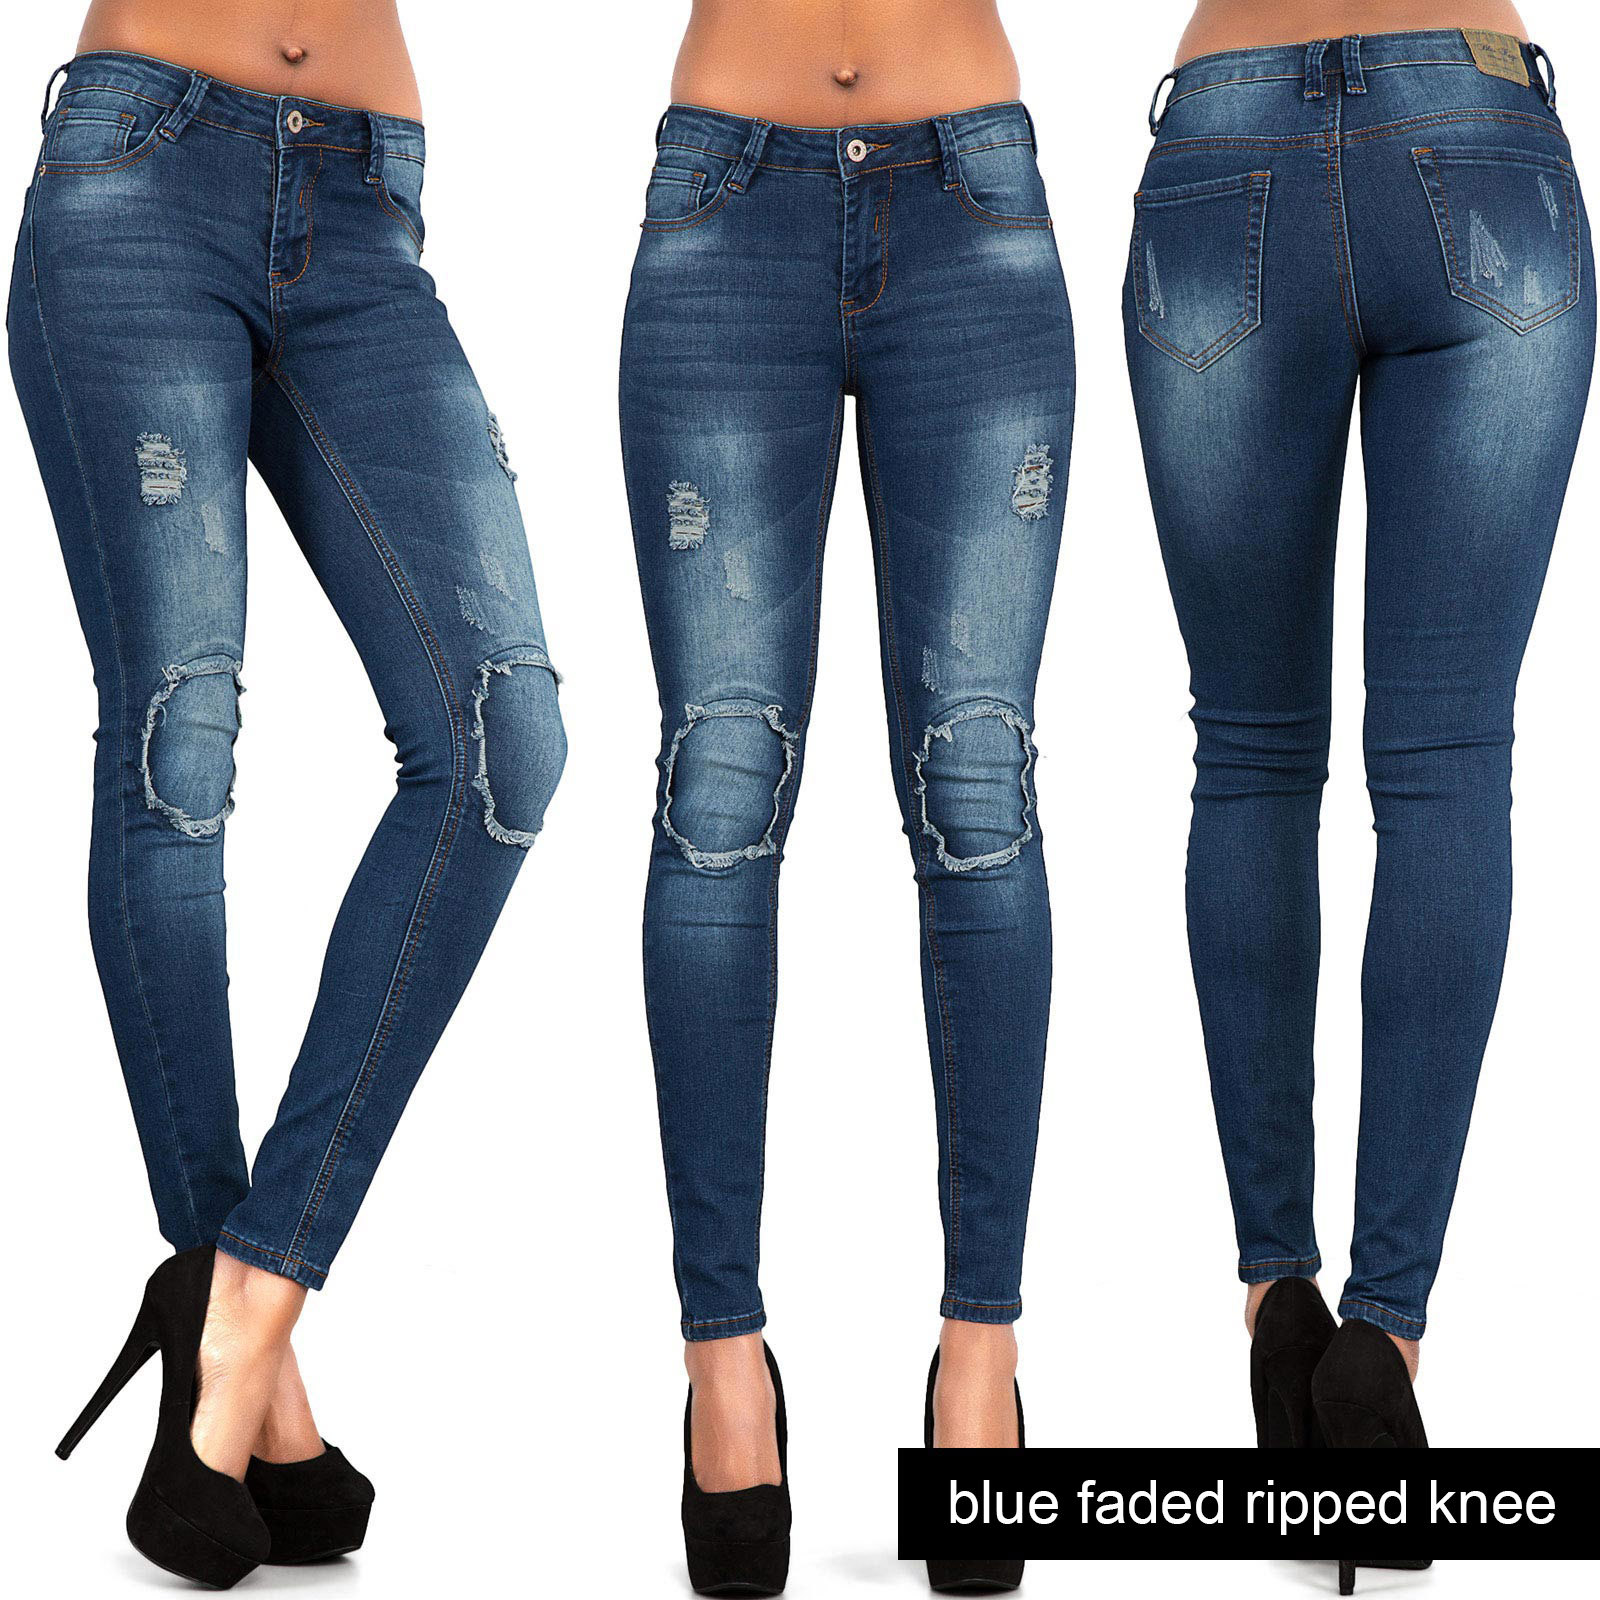 Womens-Ripped-Skinny-Jeans-Ladies-Sexy-Stretch-Denim-Slim-Fit-Jeggings-Size-6-14